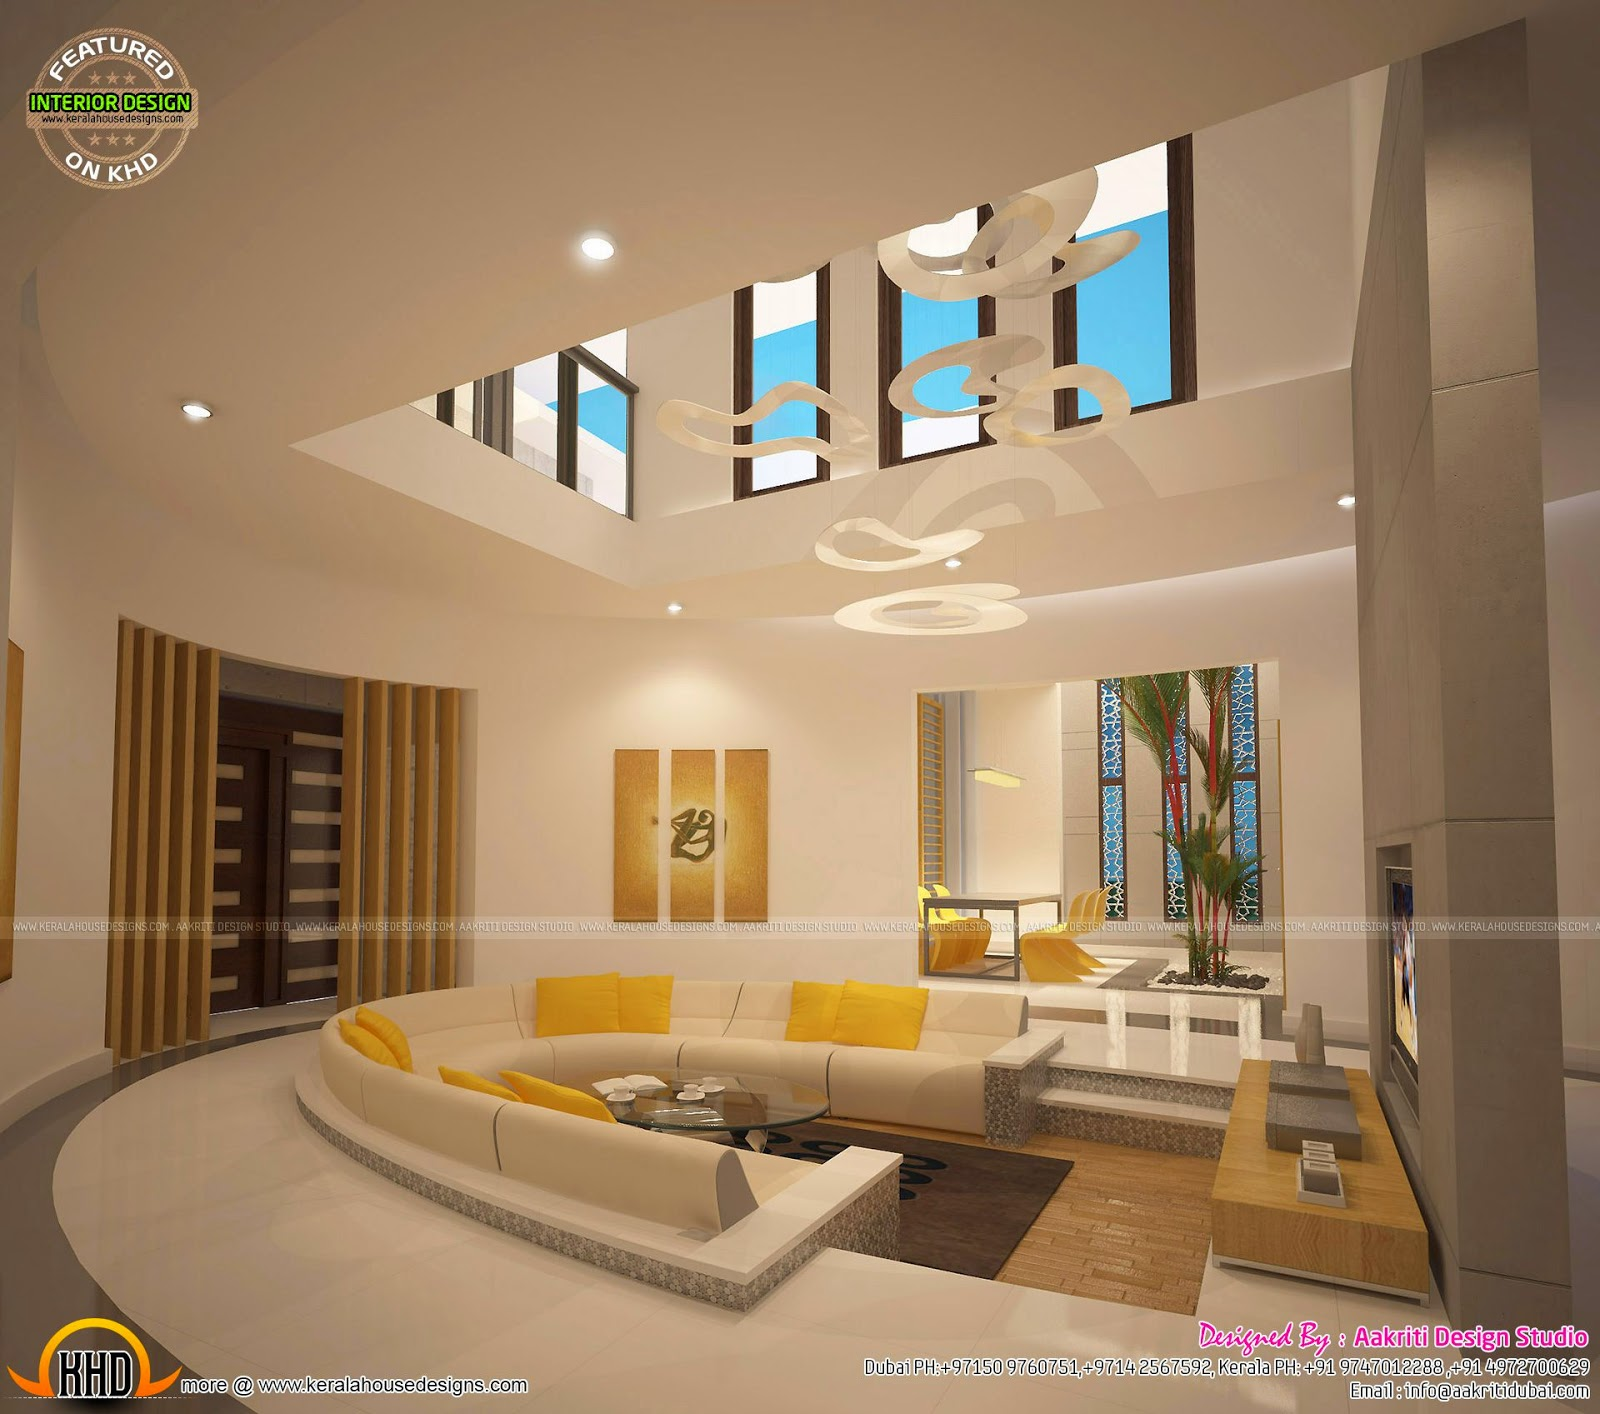 Awesome interiors of living kitchen and bathroom kerala home design and floor plans - Room house design ...